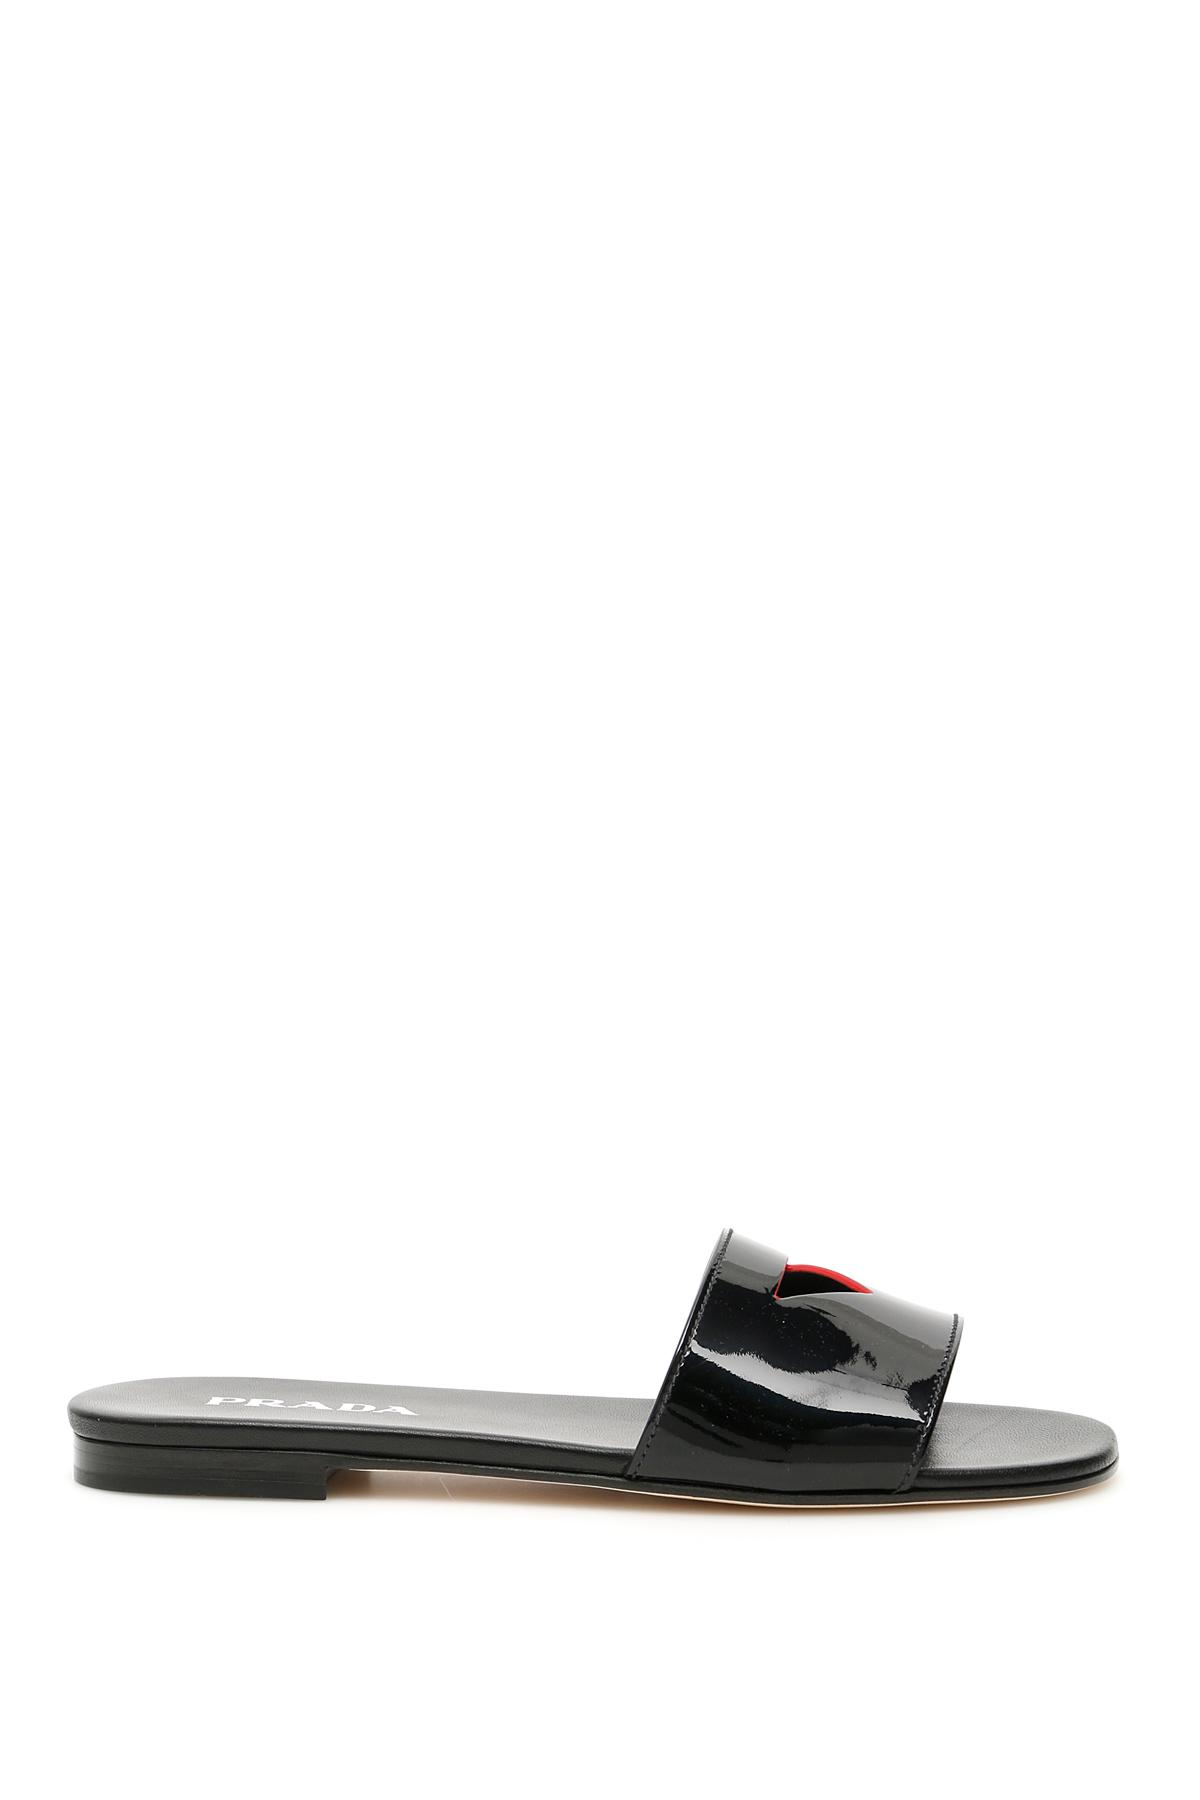 53684ce4de5c7b Lyst - Prada Patent Slides With Cut-out Triangle in Black